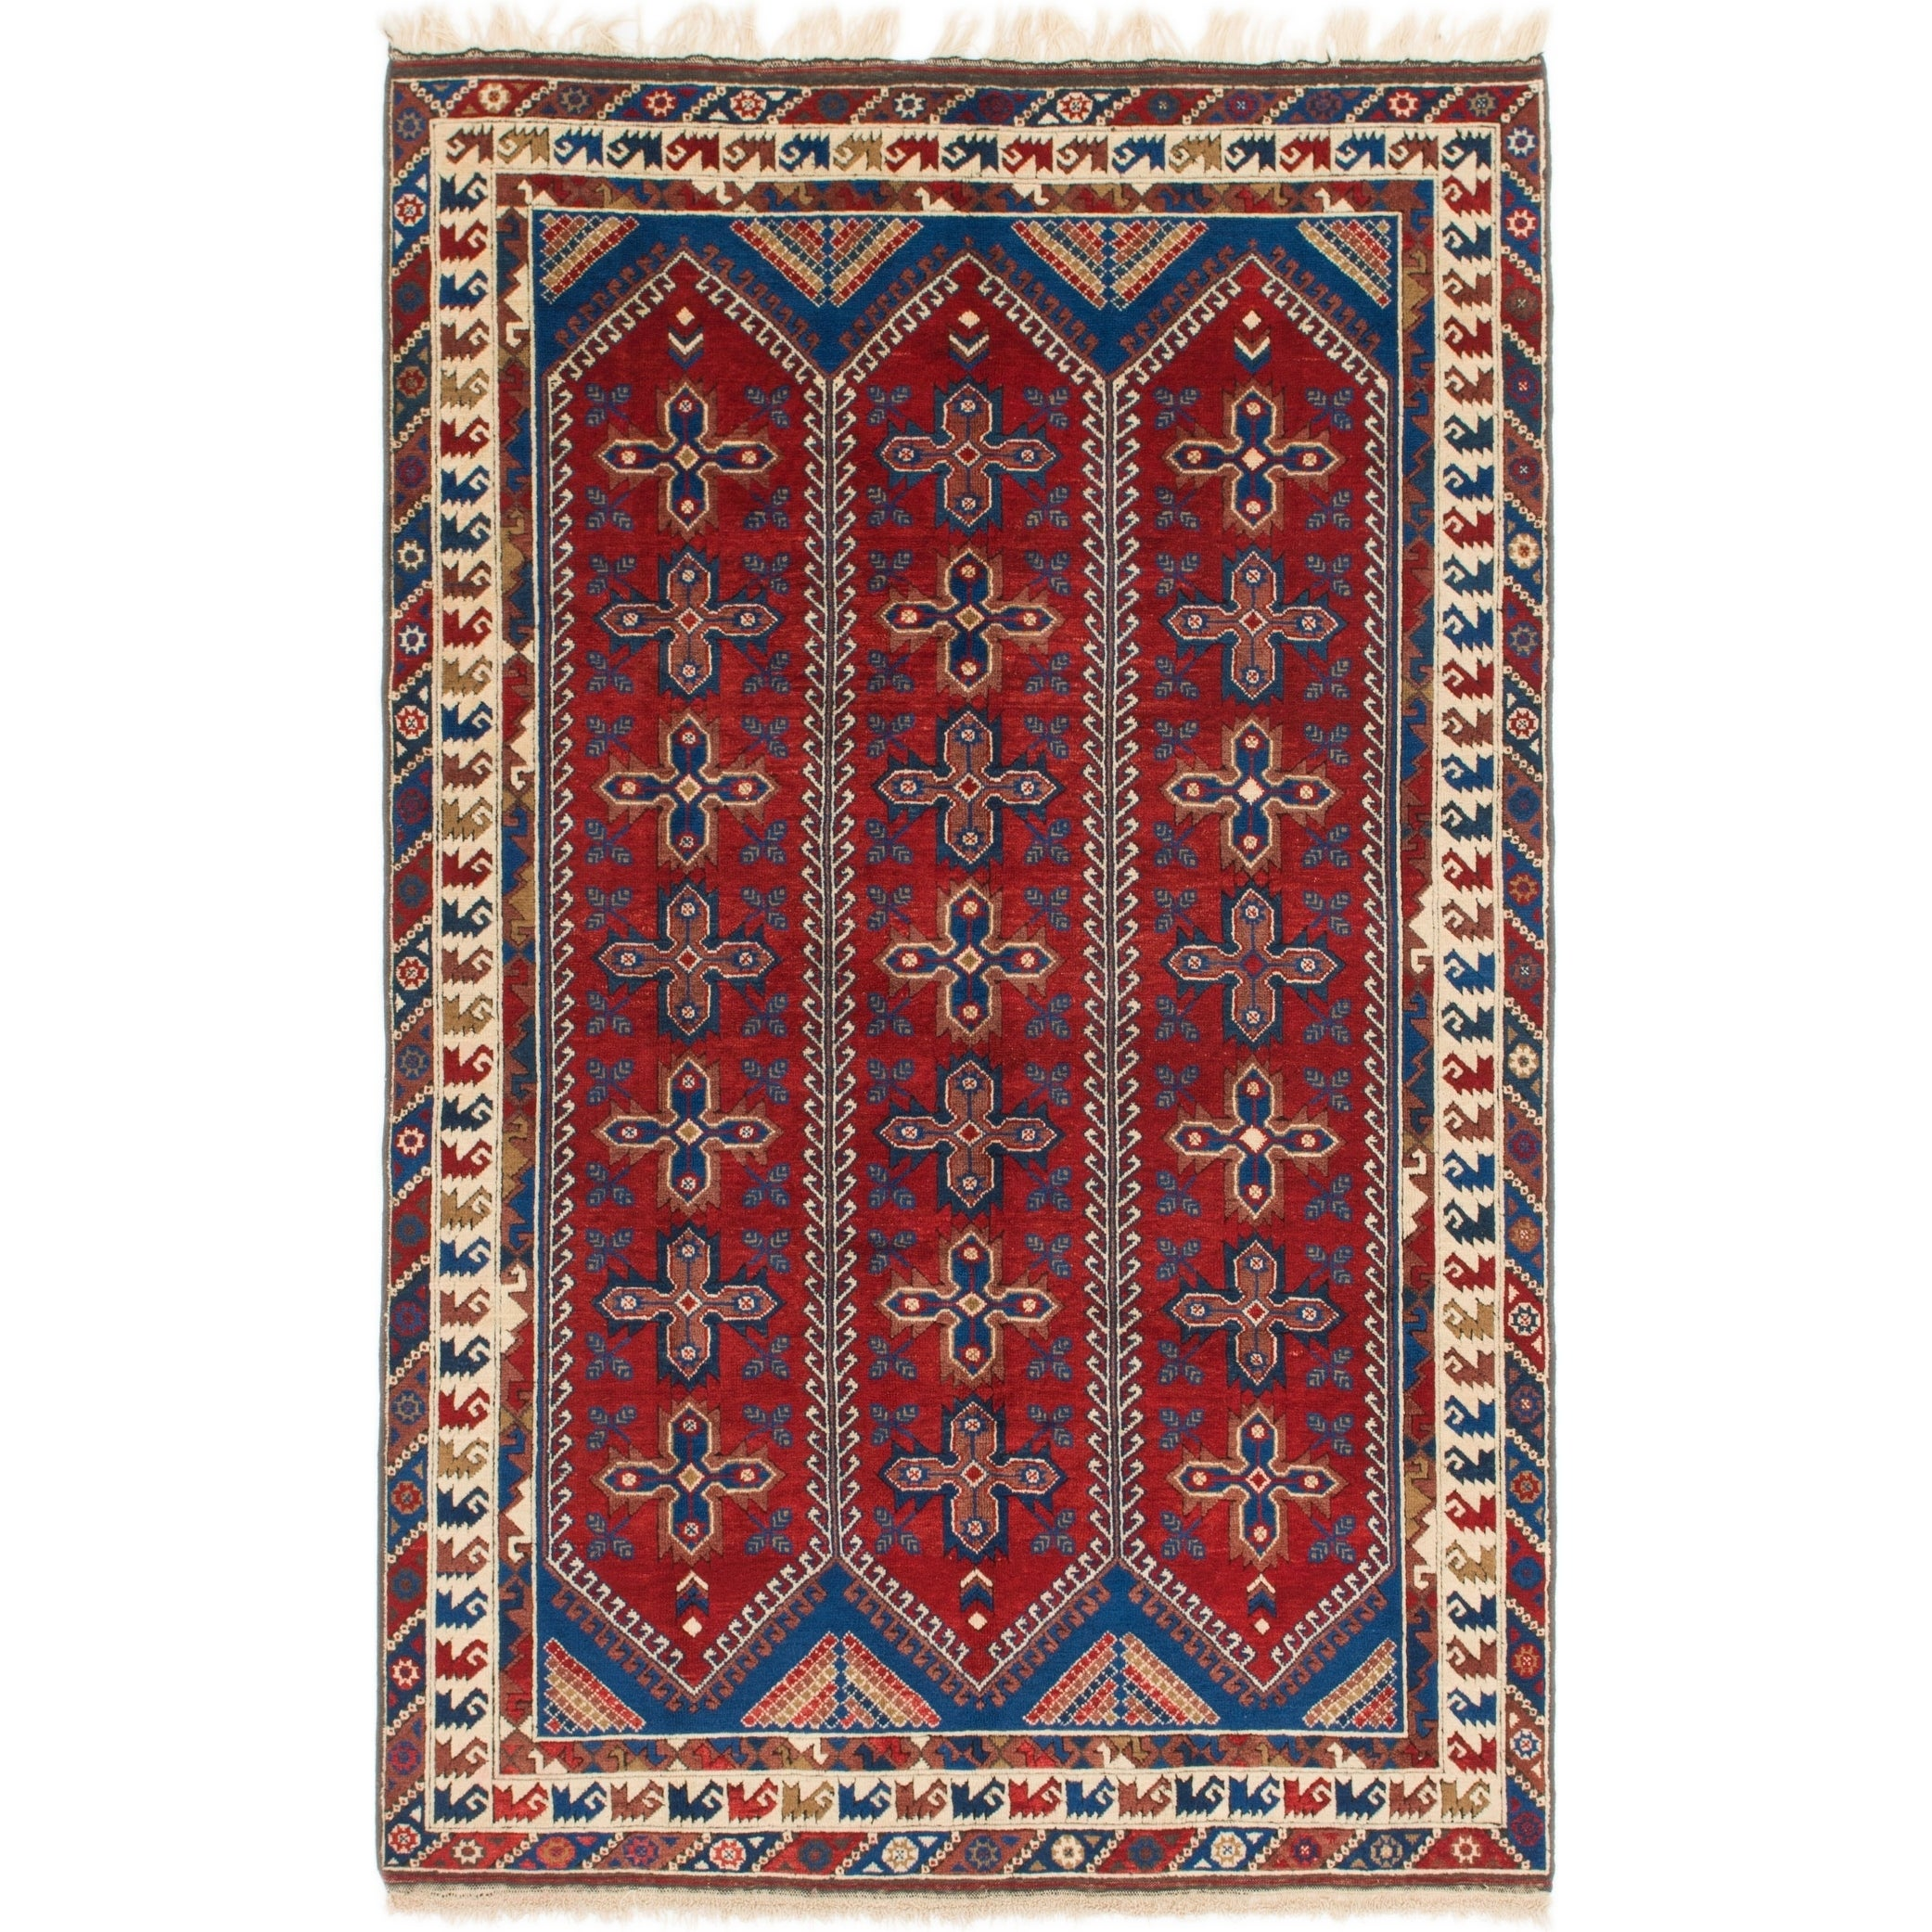 Hand Knotted Kars Wool Area Rug - 6 3 x 9 7 (Red - 6 3 x 9 7)